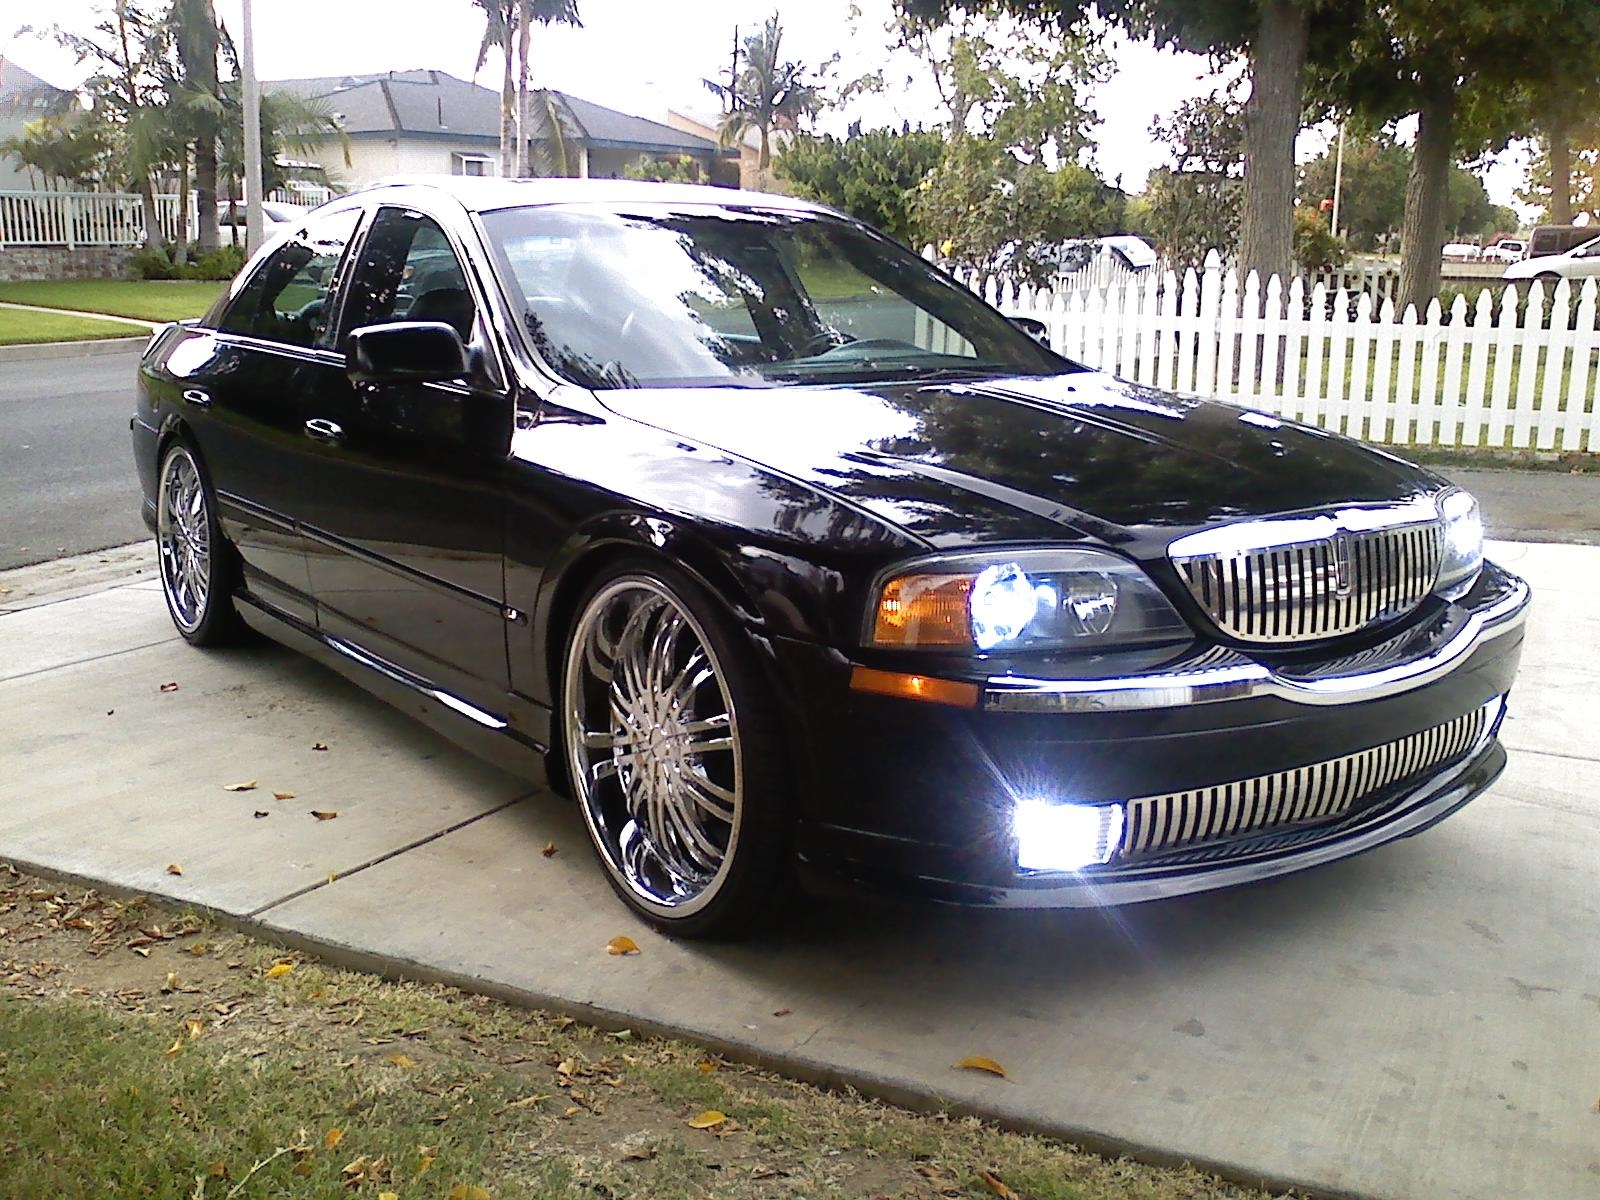 Bolosdxt13 2001 lincoln ls 23325350002_original